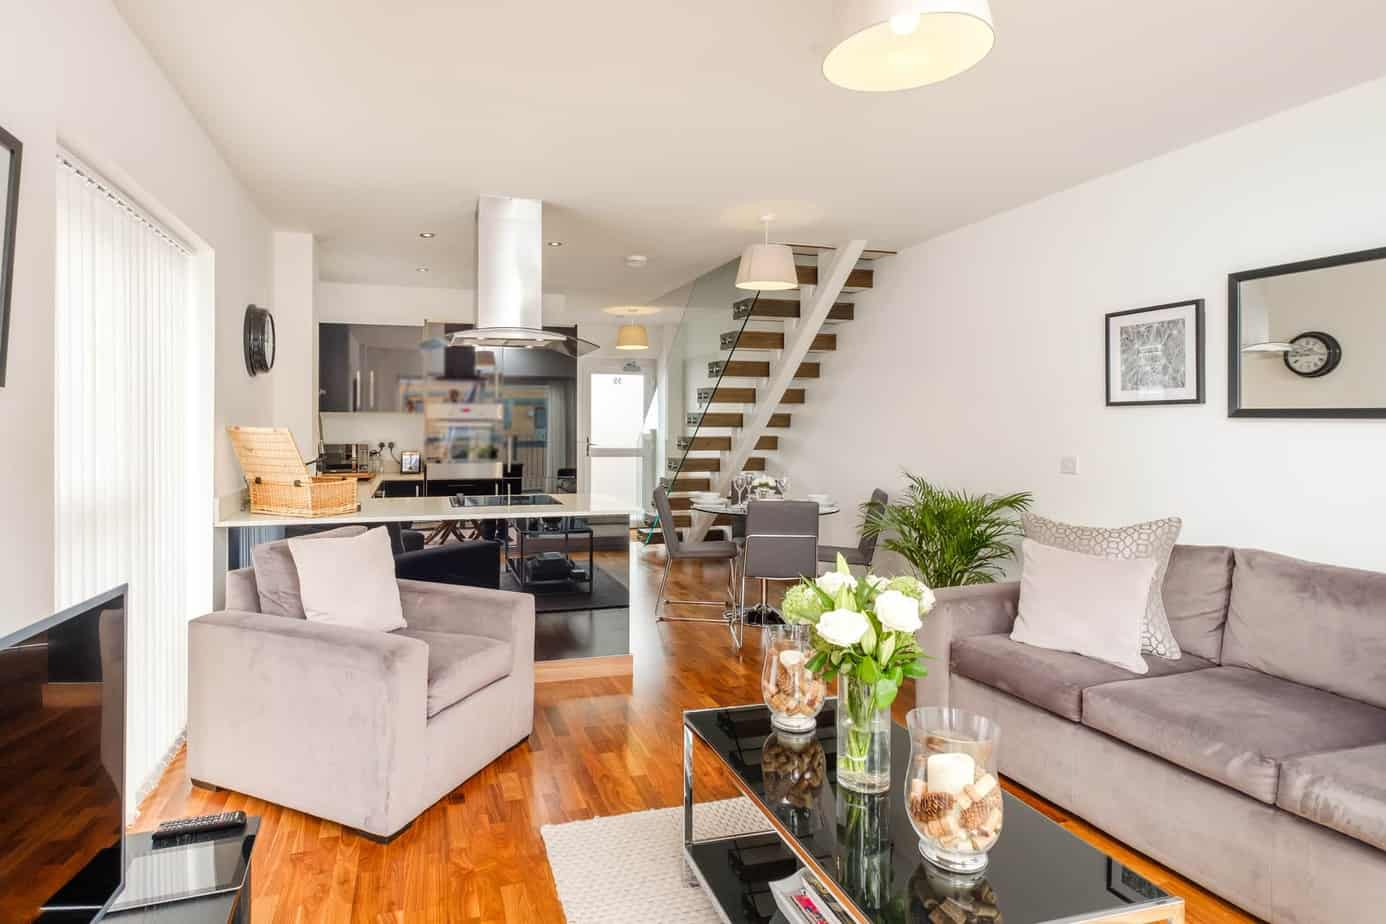 Grand Central Serviced Apartment Cambridge Tailored Stays livingroom with grey sofa and kitchen in the background